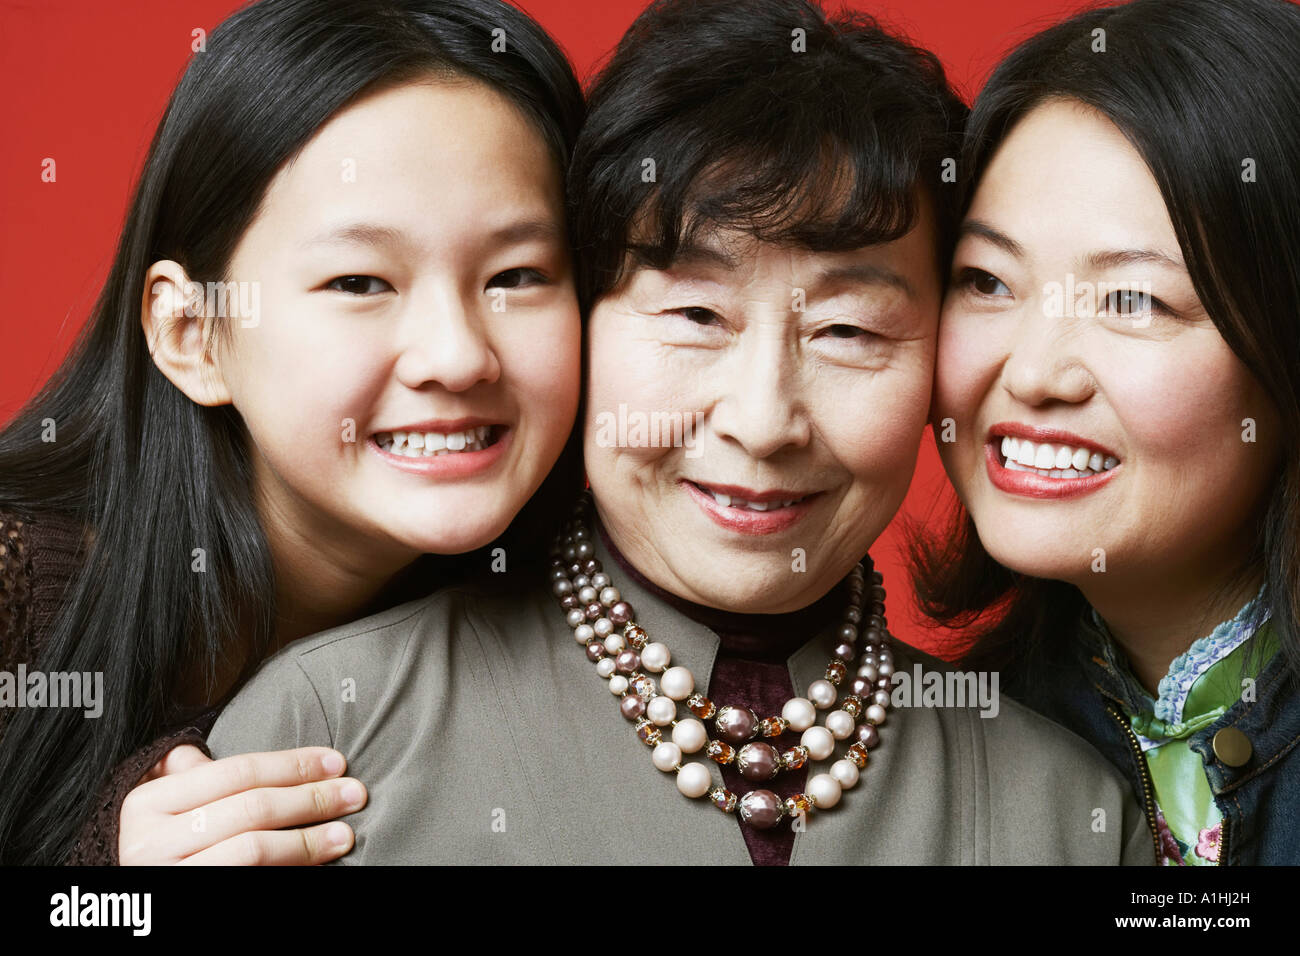 Portrait of a grandmother and her granddaughter smiling - Stock Image